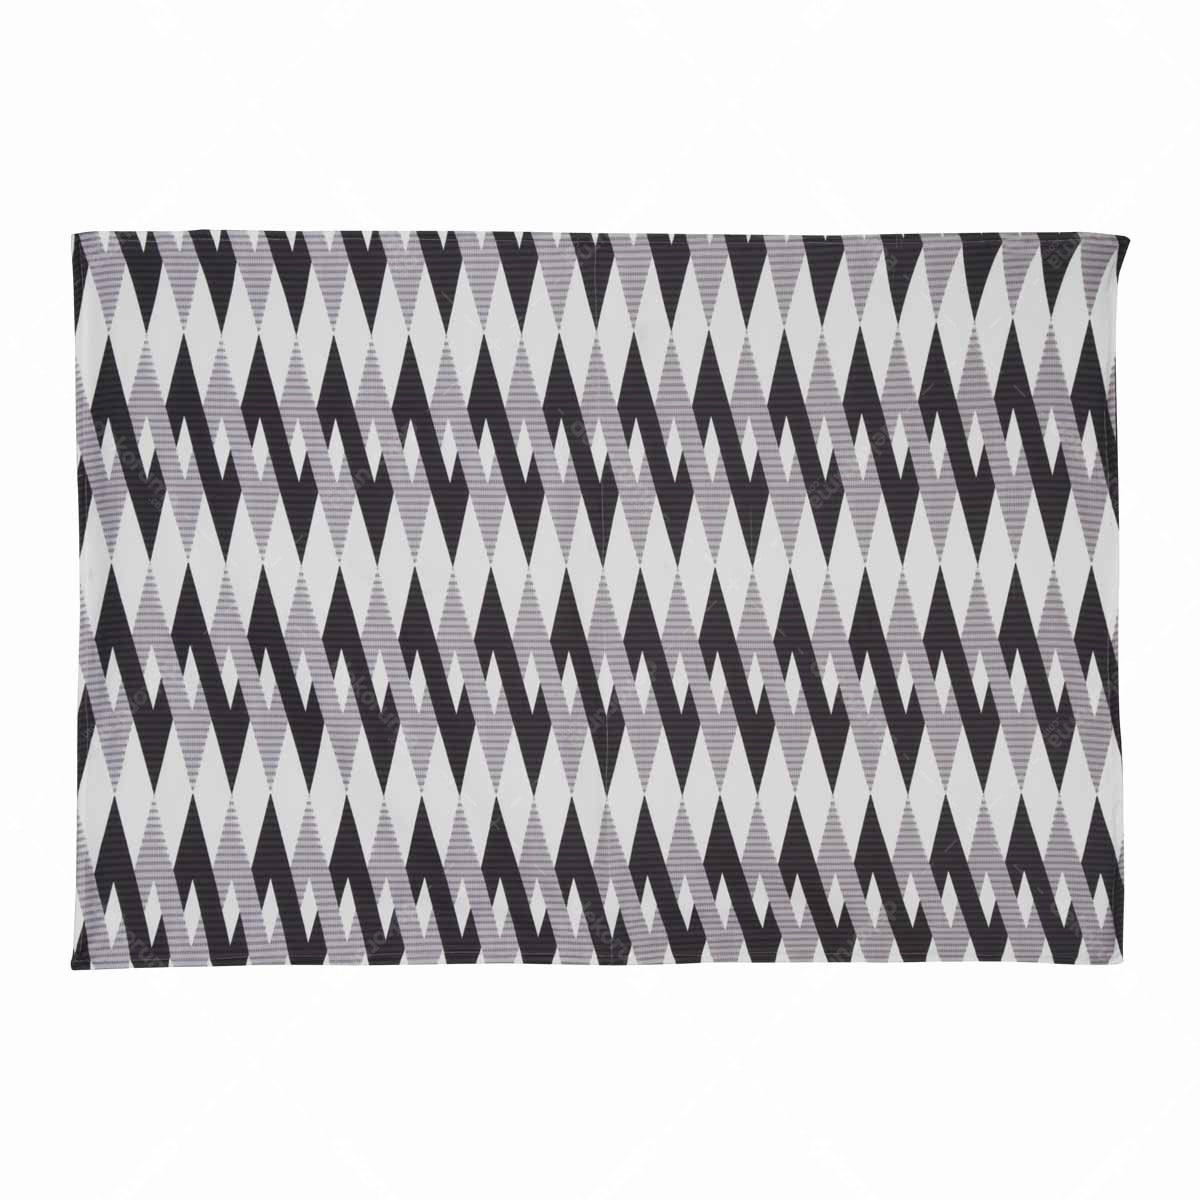 Chic For Home Chevron ikat black Canvas Rugs